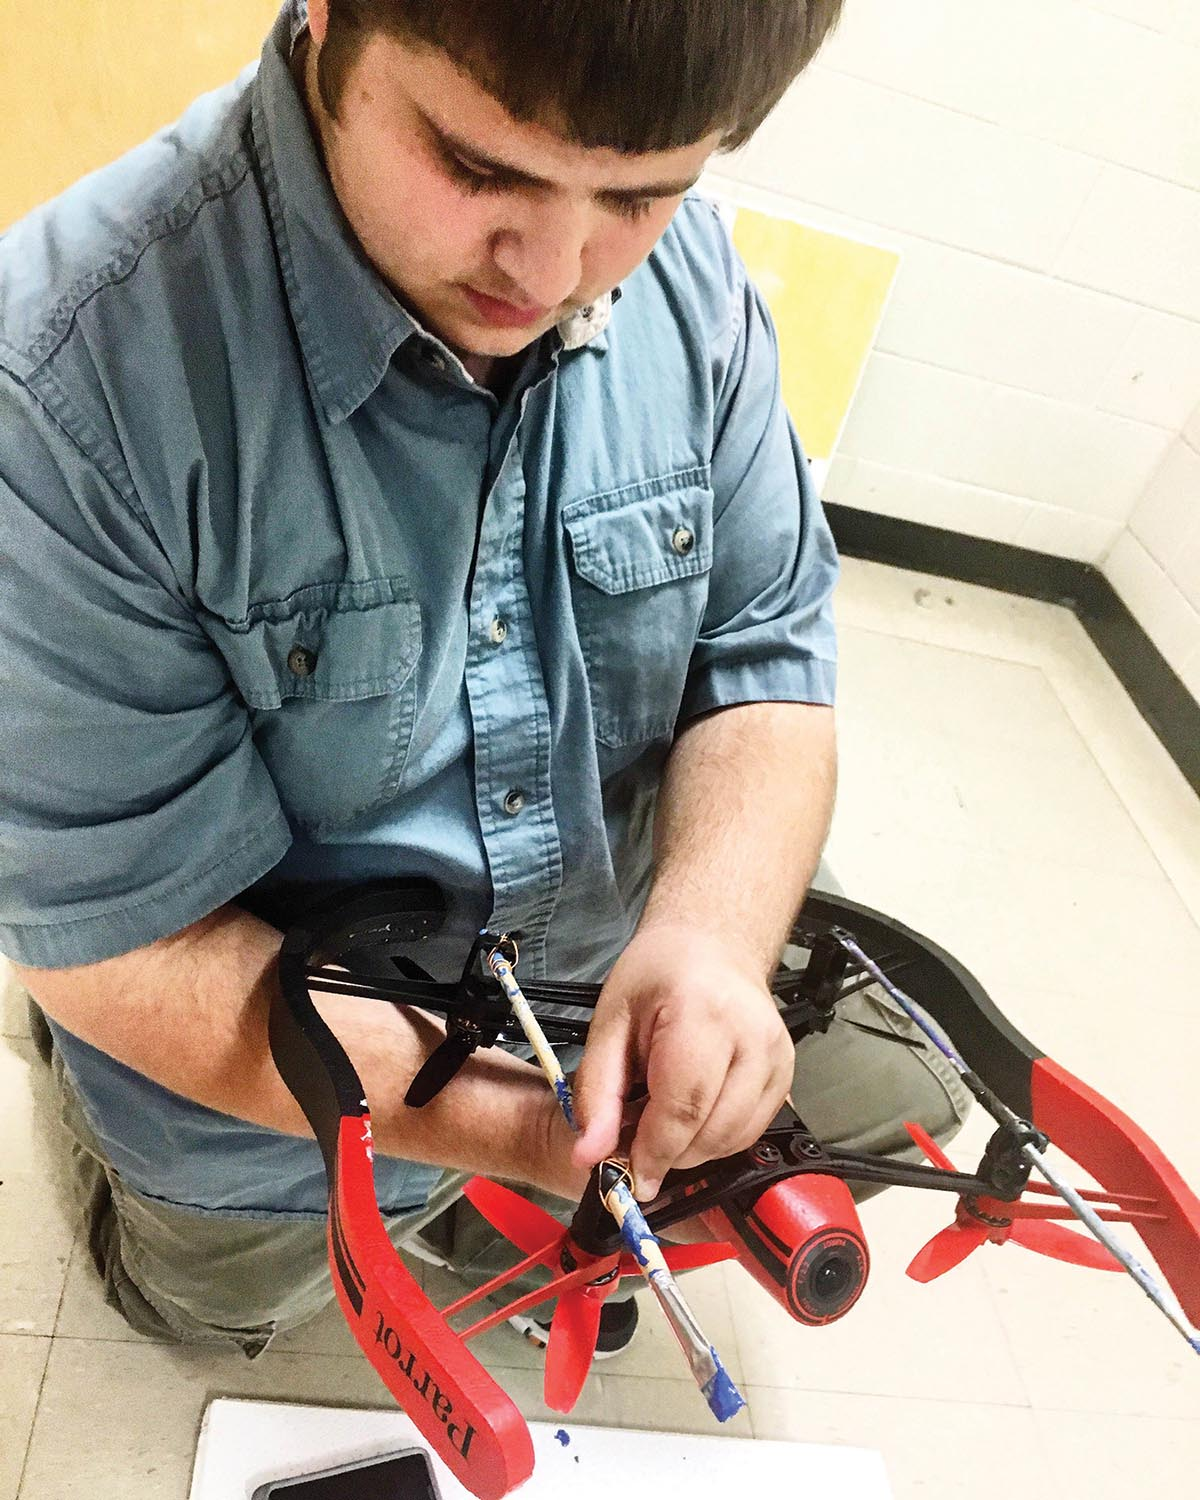 Junior Jesse Byrd modifies a Parrot drone, prepping it for artistic flight. Photograph by Ryan B. Jackson